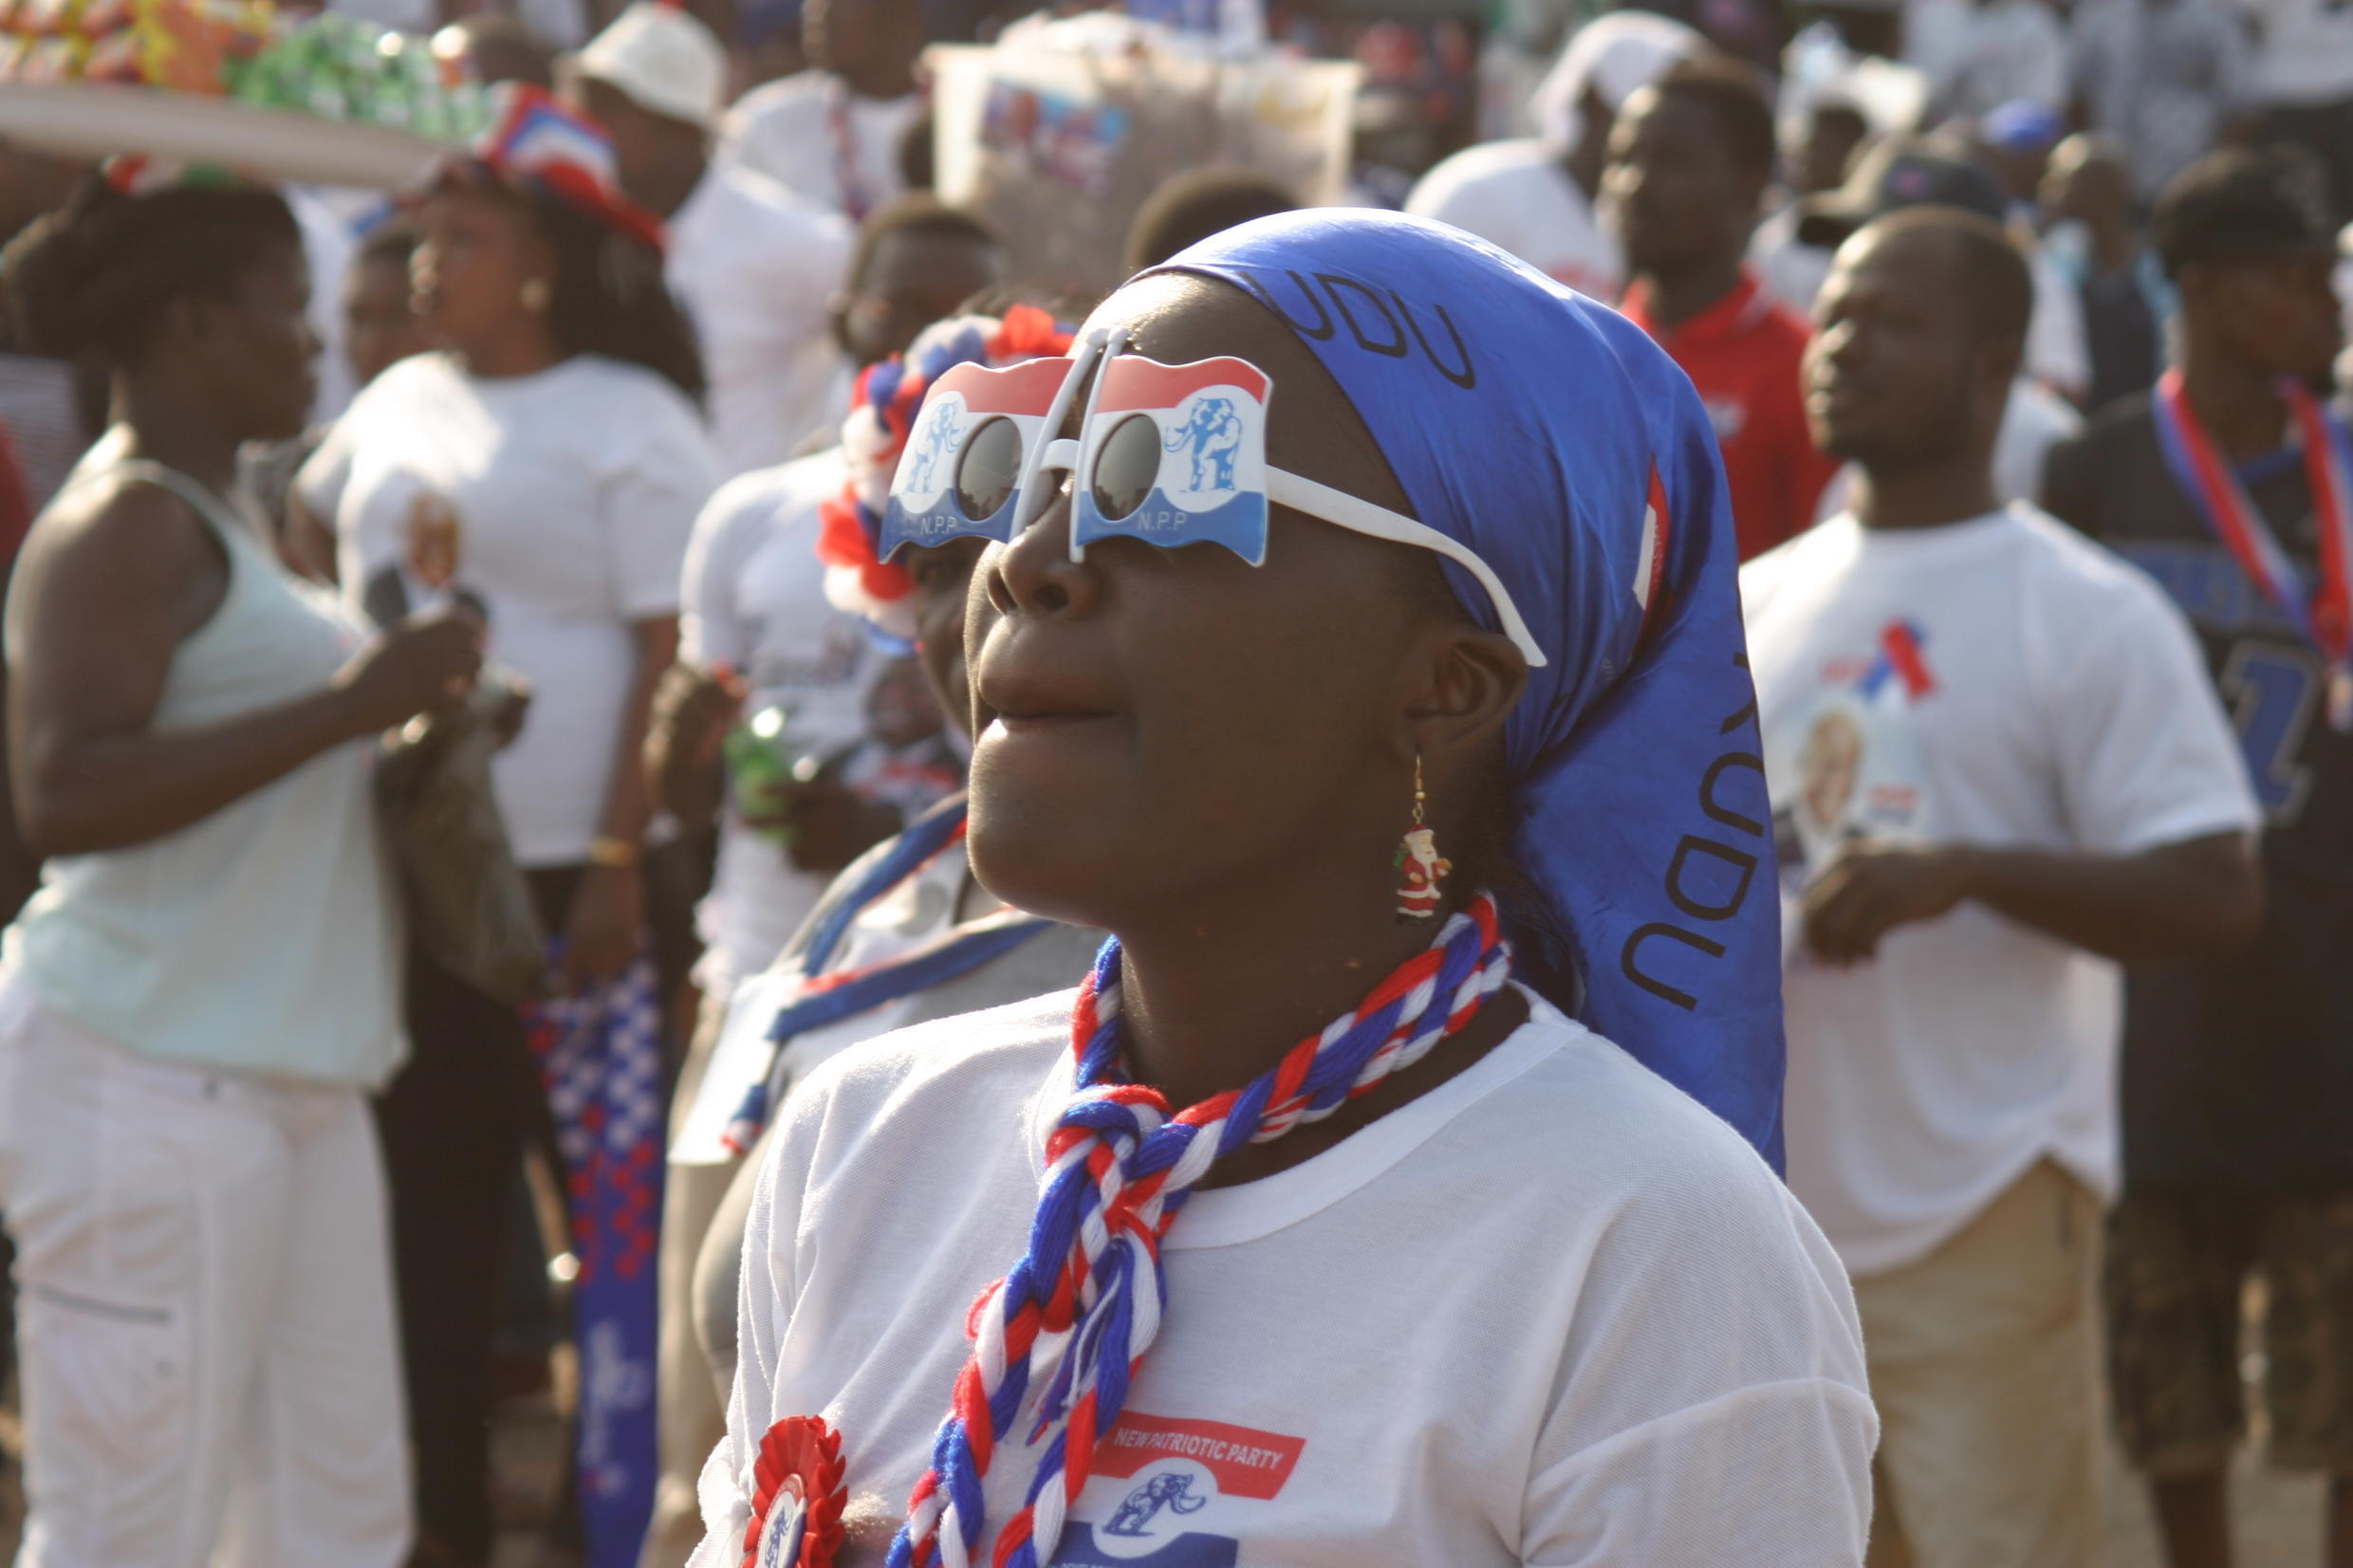 NPP supporter waits in anticipation for the arrival of Nana Akufo-Addo, Accra, 4 December 2016.